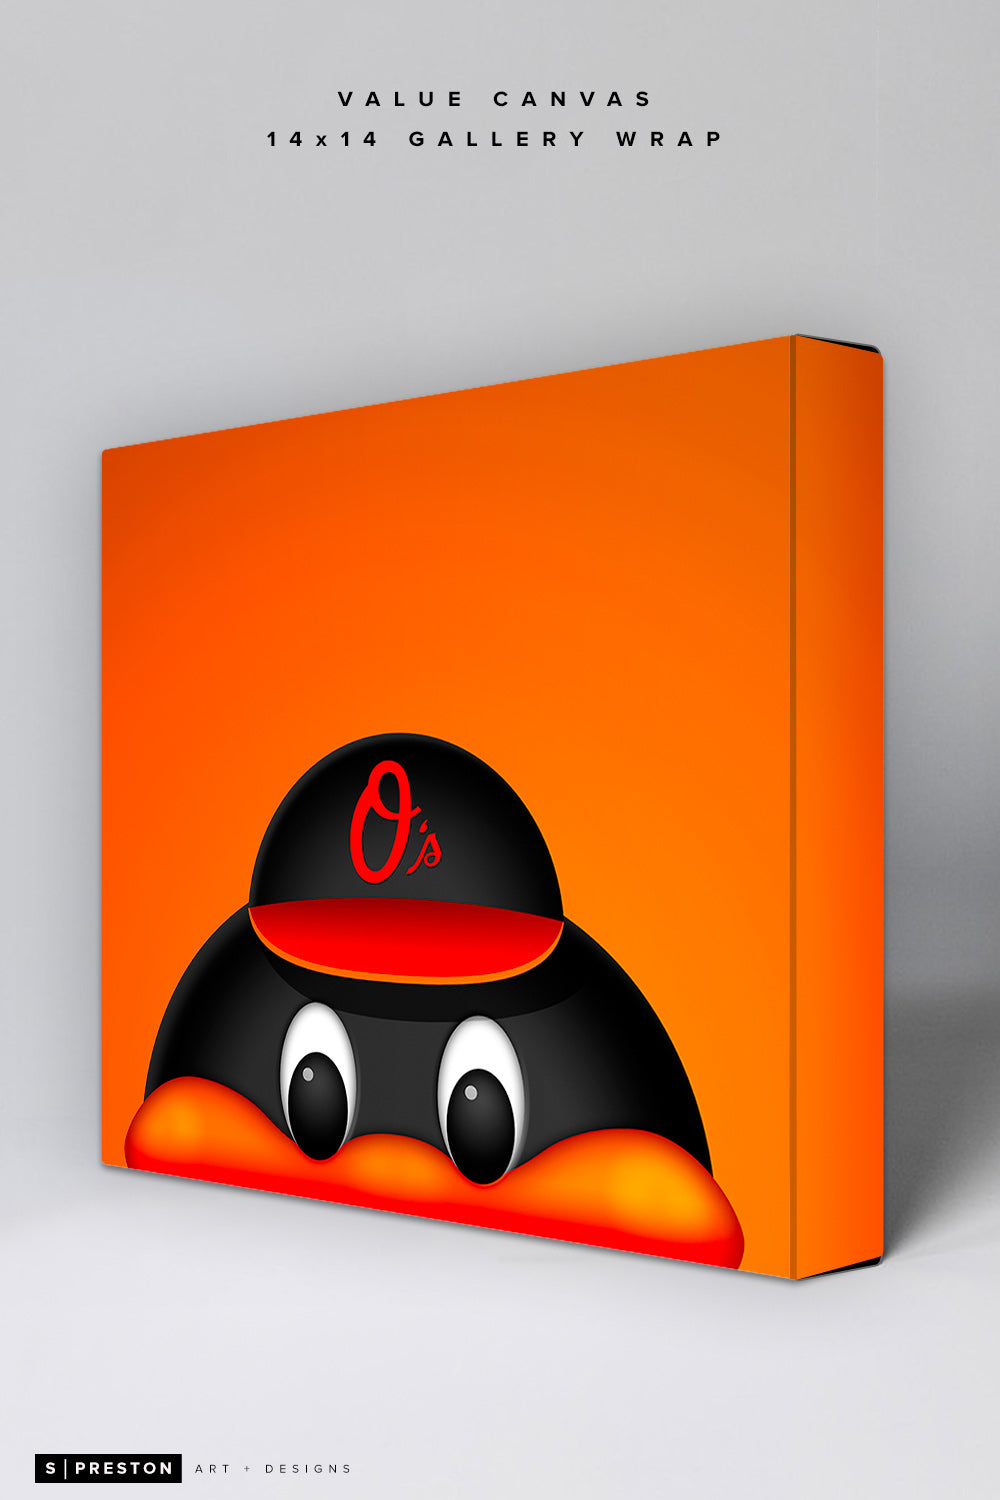 Minimalist Orioles Bird Value Canvas